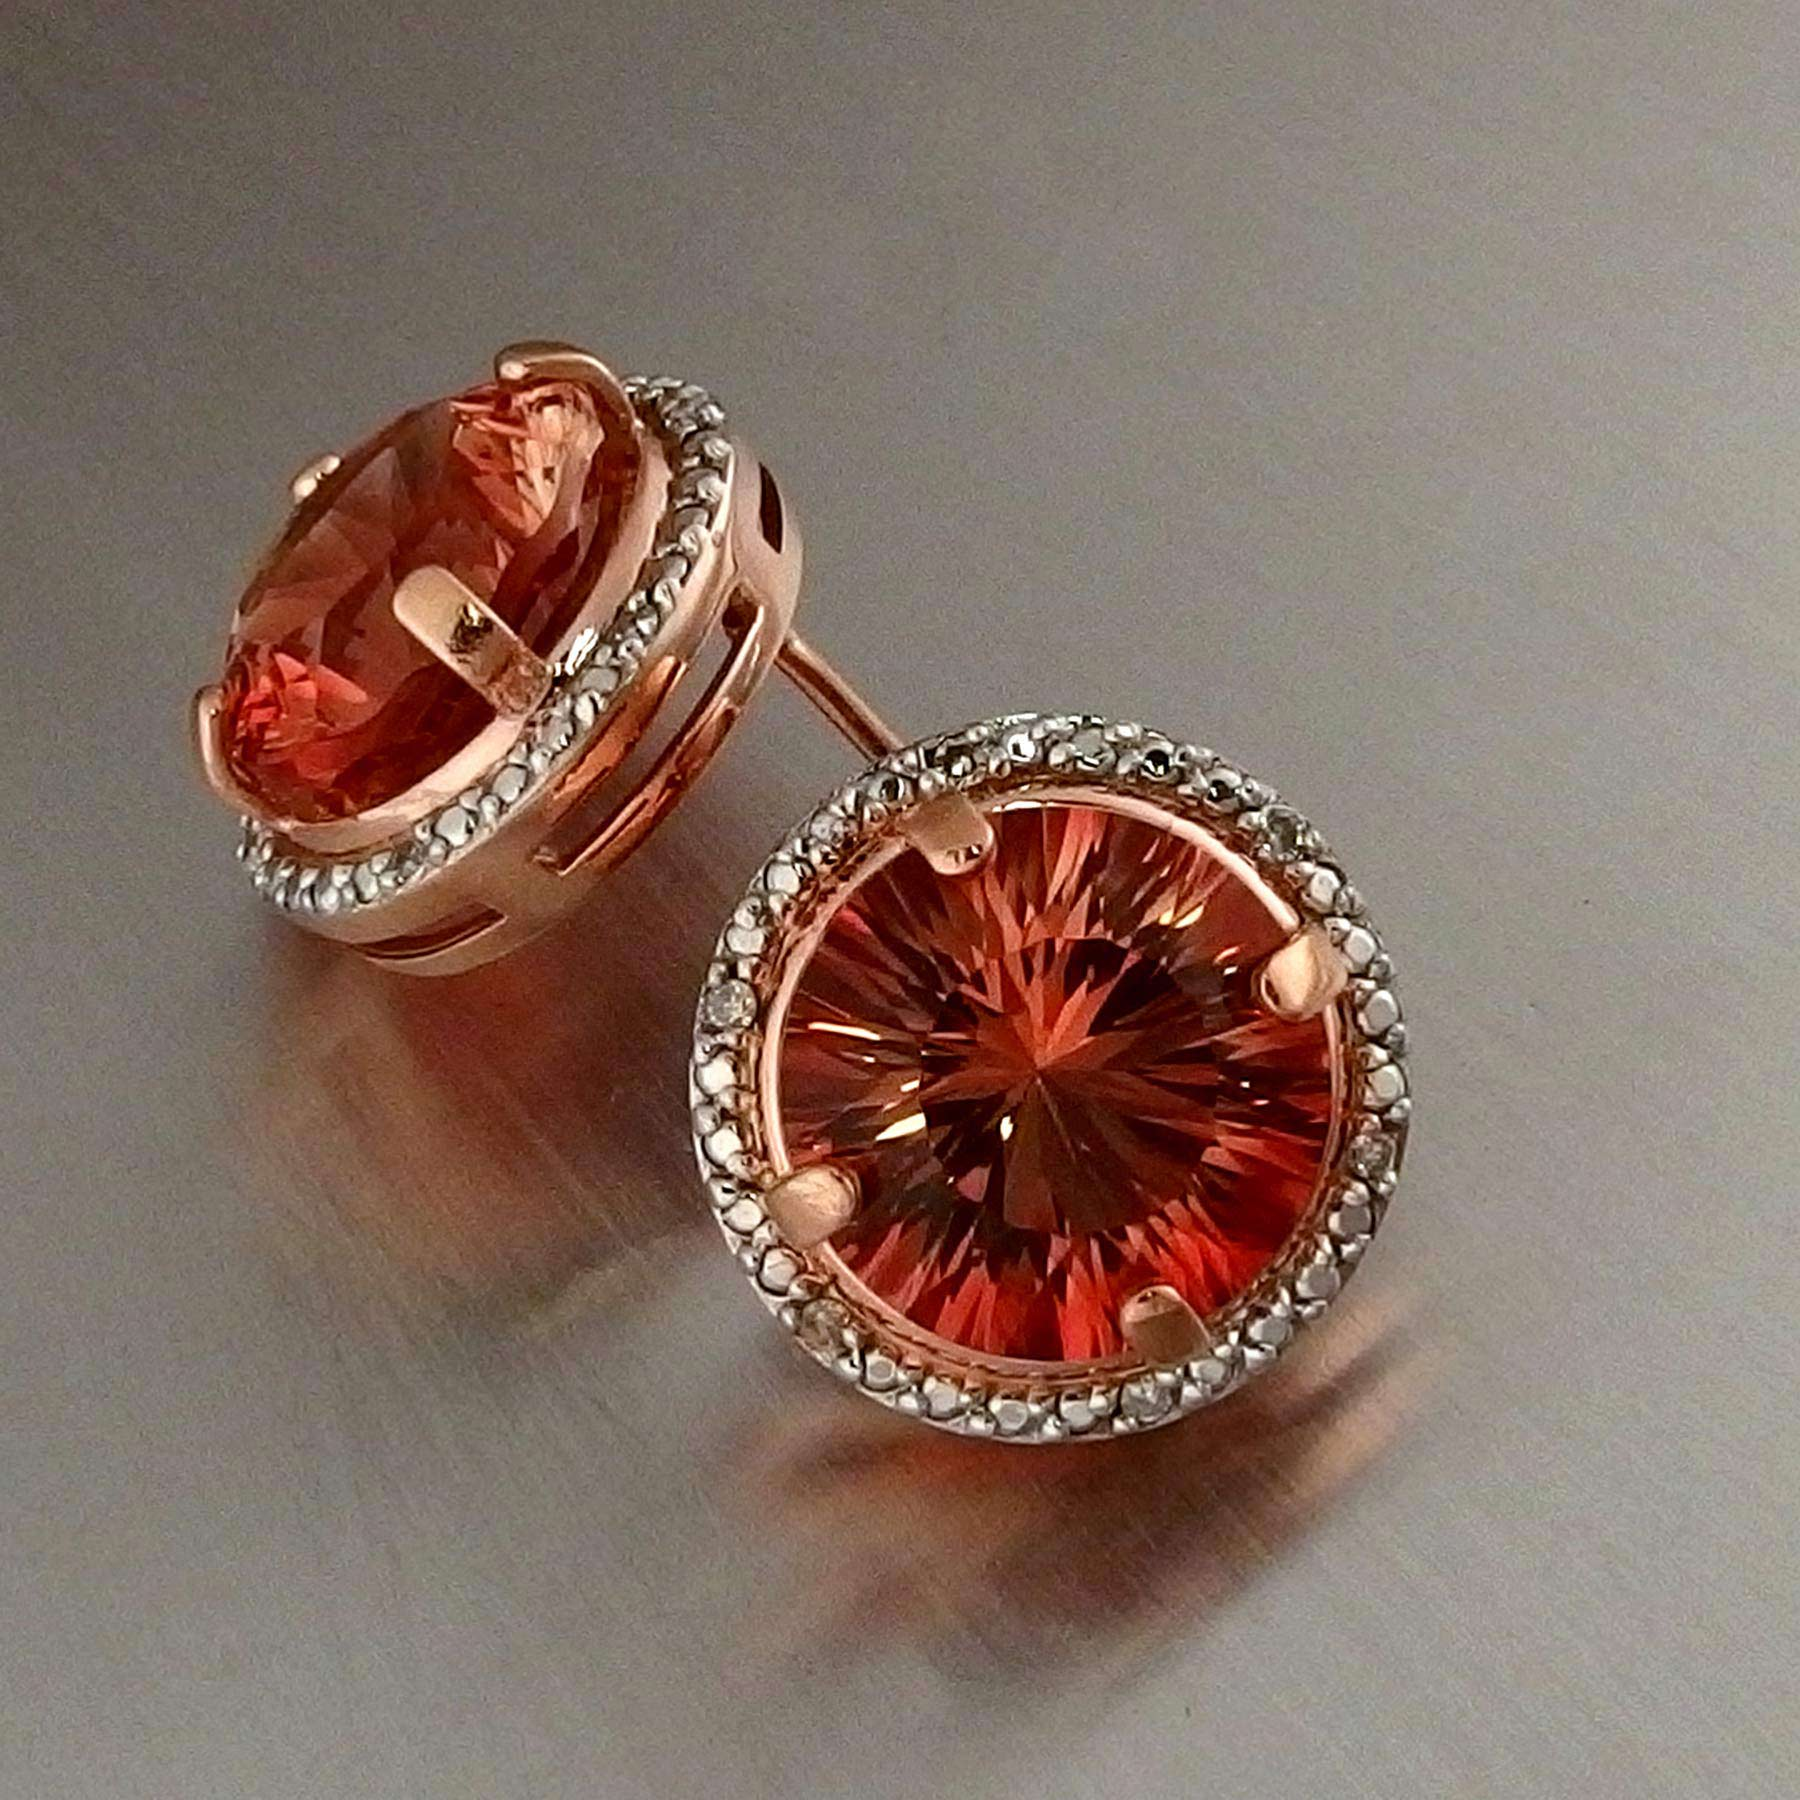 whitney set sequoia band rings wedding sunstone stone shelhamer engagement products solitaire sun